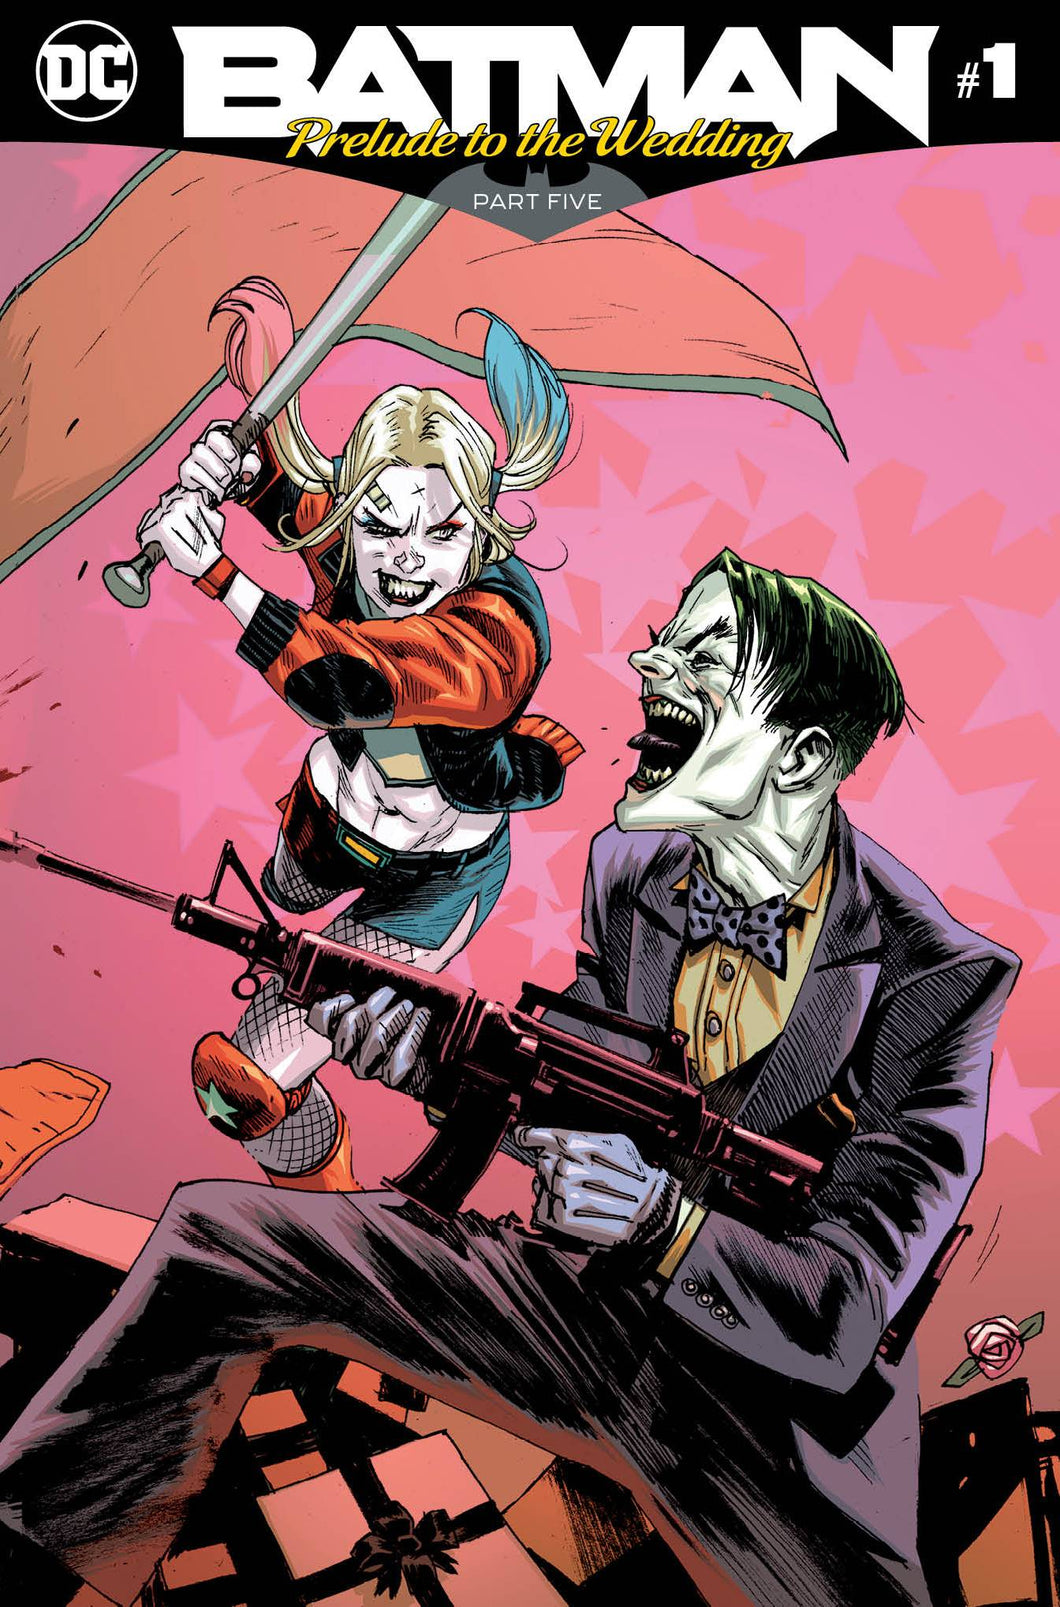 BATMAN PRELUDE TO THE WEDDING HARLEY VS JOKER #1 RELEASE DATE 06/27